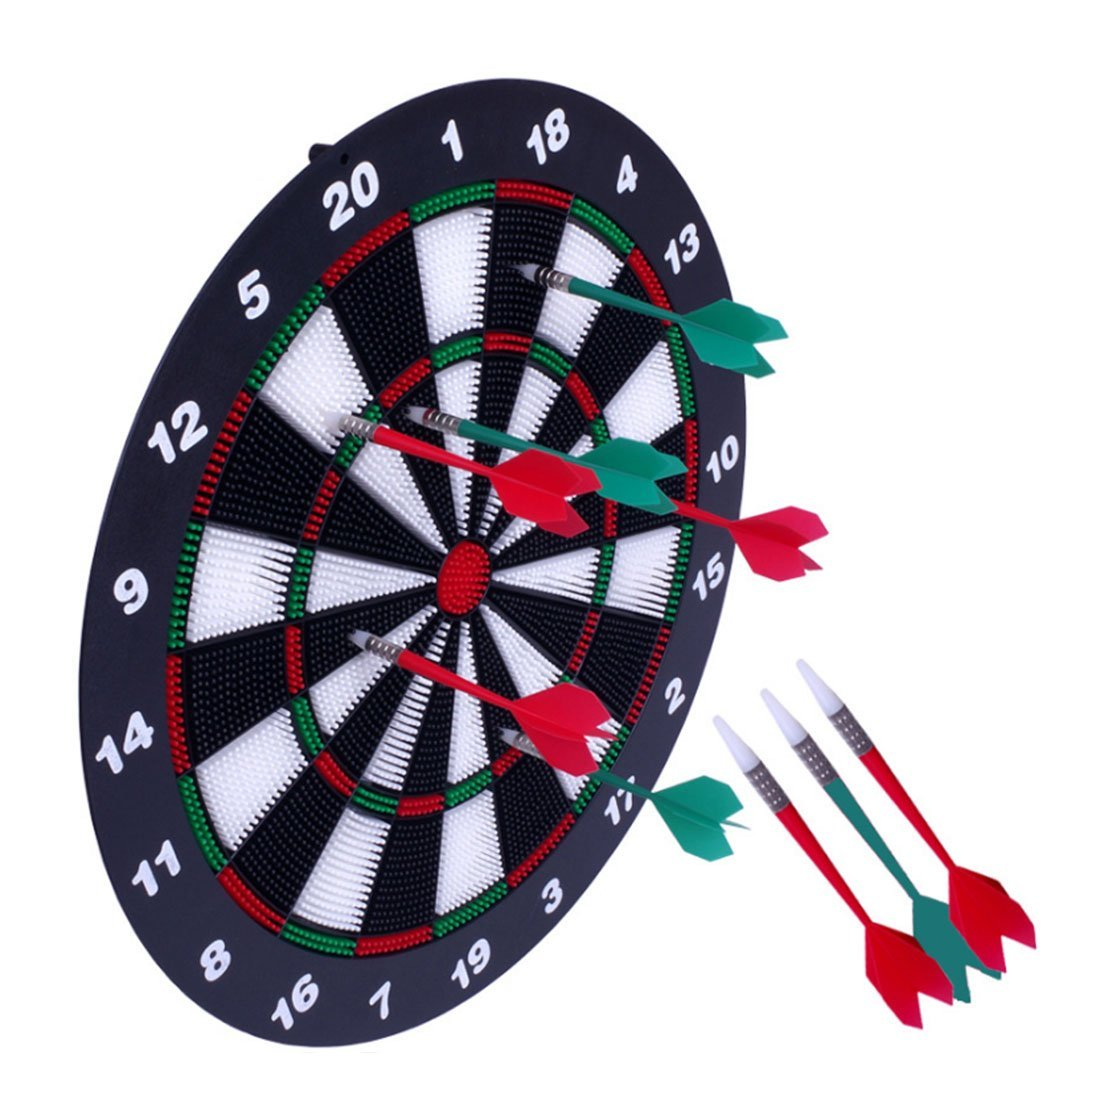 RuiyiF Dart Board and Darts Set for Kids Adults Comes with 16.5Inches Safety Dart Board Metal Pallet and 6Darts